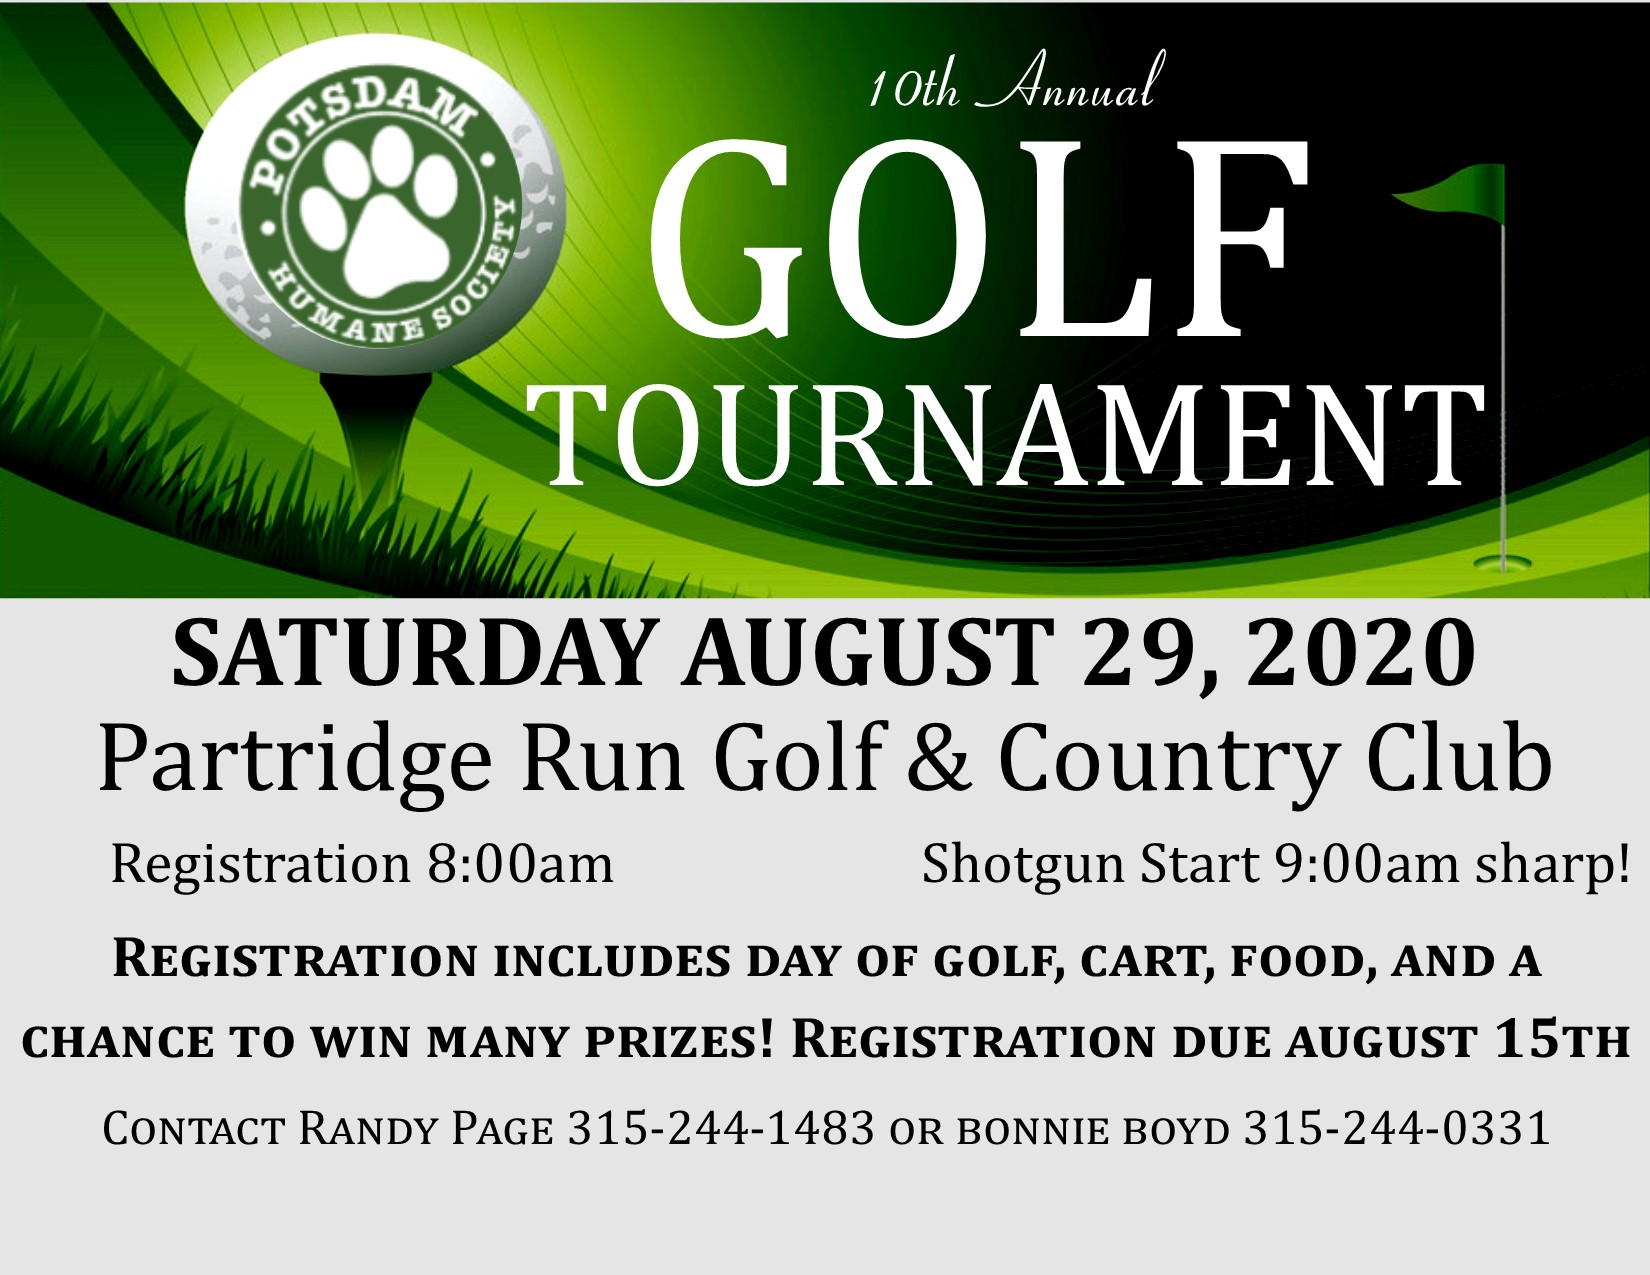 <a href='http://potsdamhumanesociety.org/wp/?p=10090'>10th Annual Golf Tournament</a>